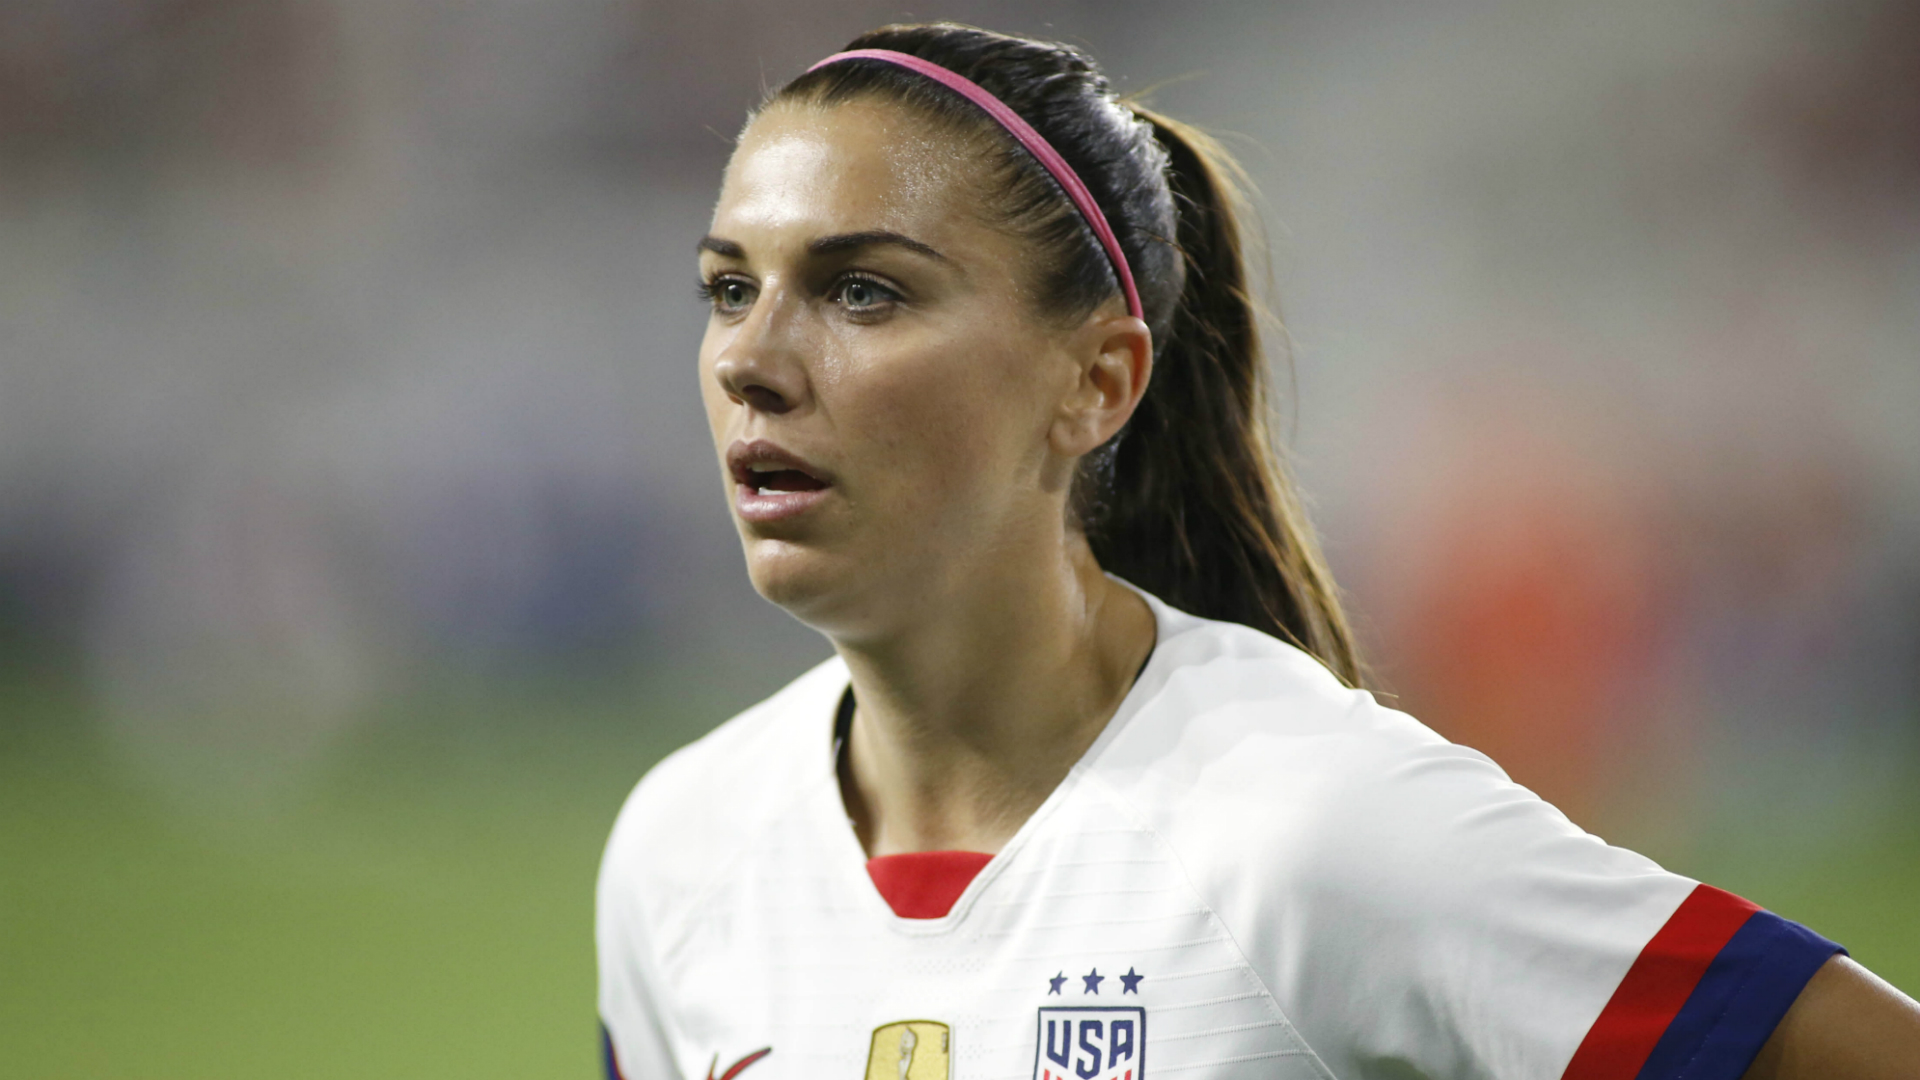 Women's World Cup 2019: Alex Morgan says she's motivated by winning tournament, not Golden Boot